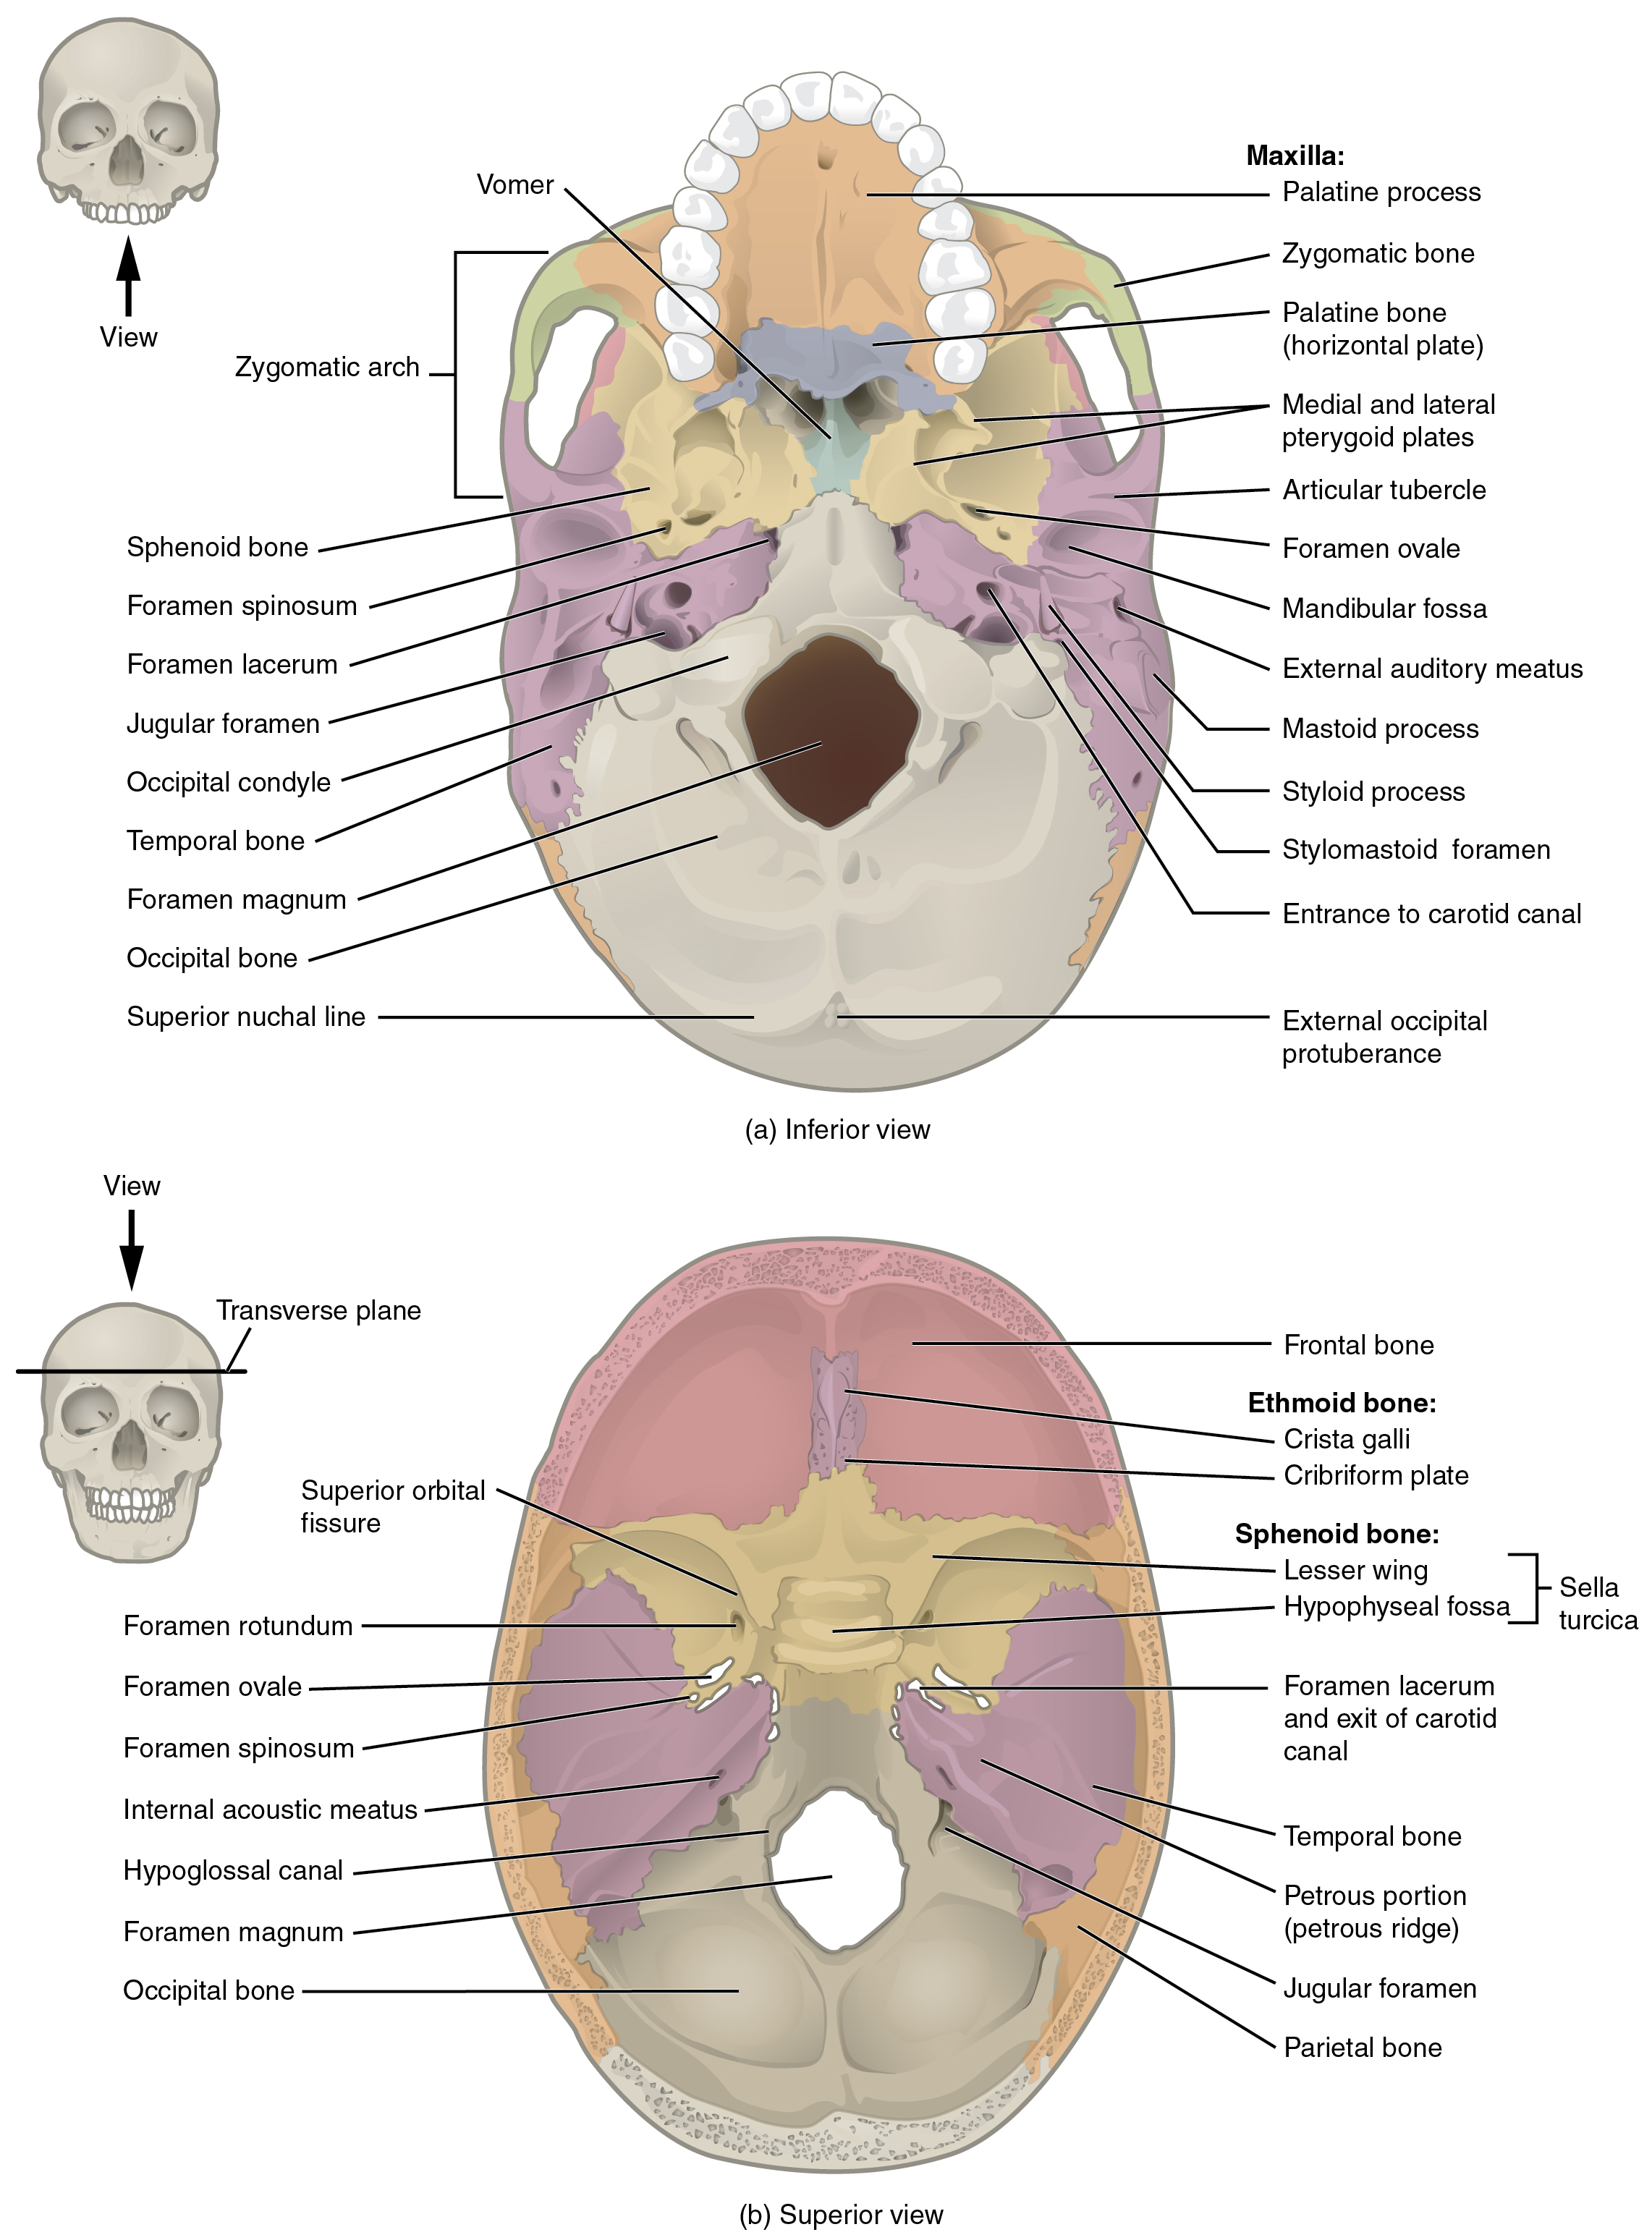 This image shows the superior and inferior view of the skull base. In the top panel, the inferior view is shown. A small image of the skull shows the viewing direction on the left. In the inferior view, the maxilla and the associated bones are shown. In the bottom panel, the superior view shows the ethmoid and sphenoid bones and their subparts.